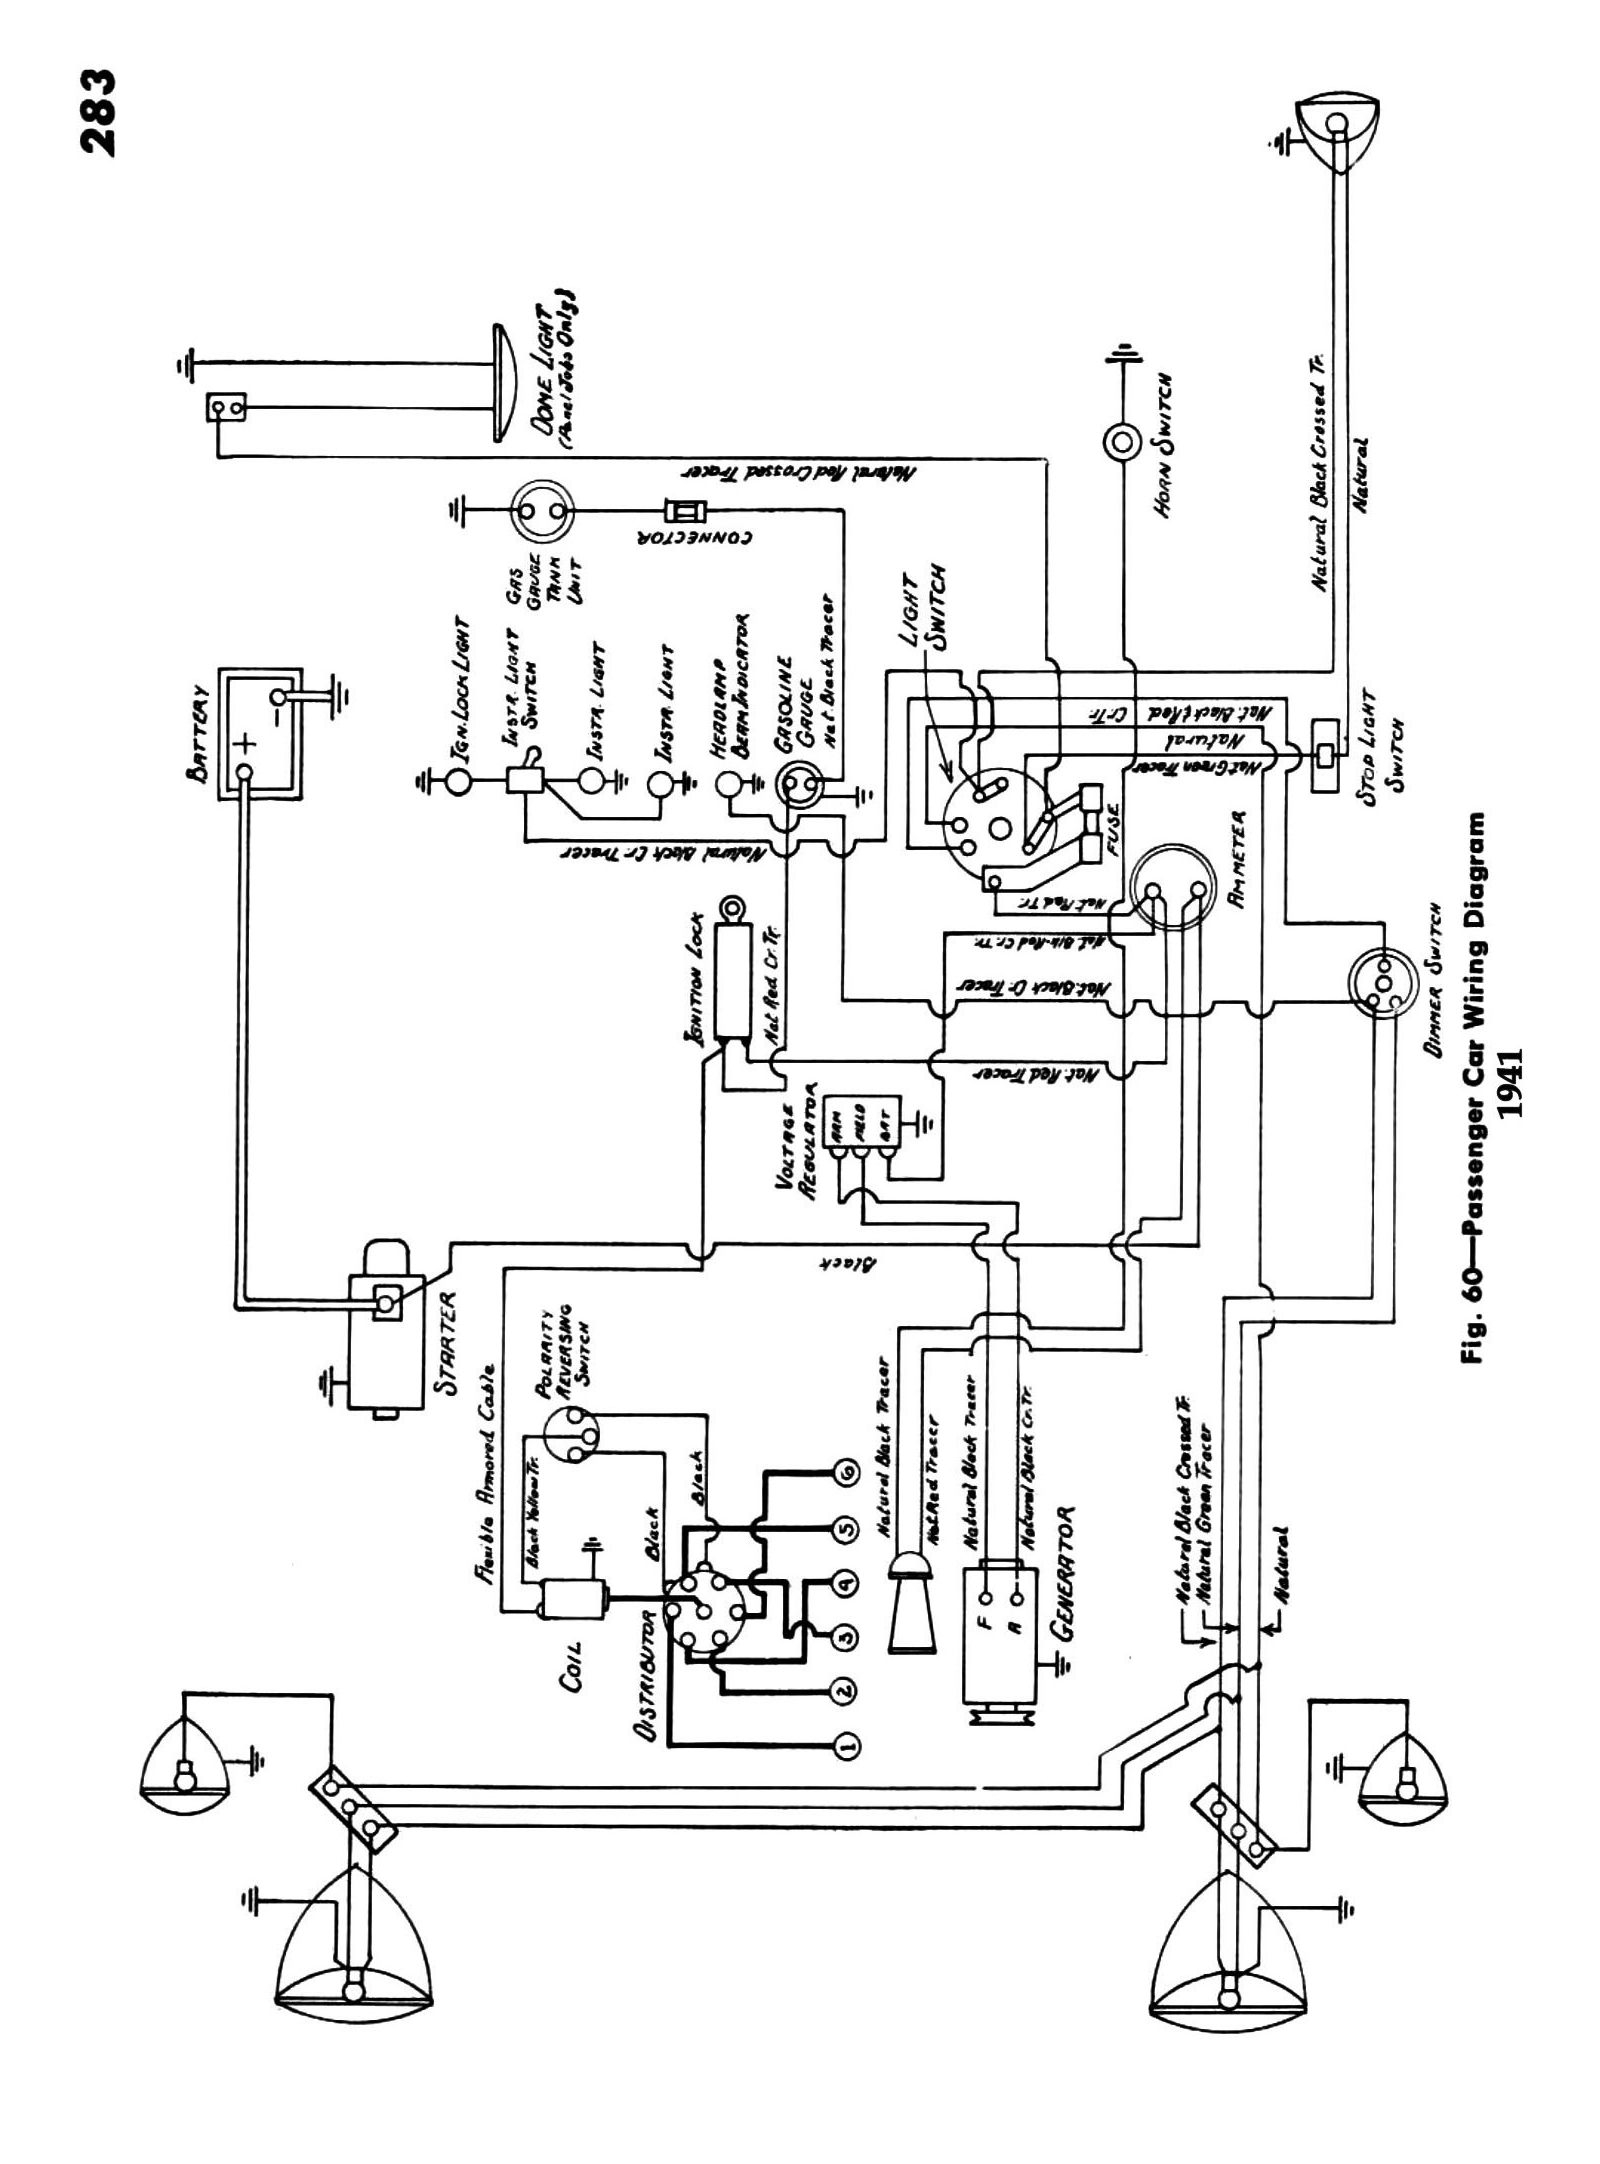 1941 Dodge Wiring Diagram Wiring Diagram Blogs